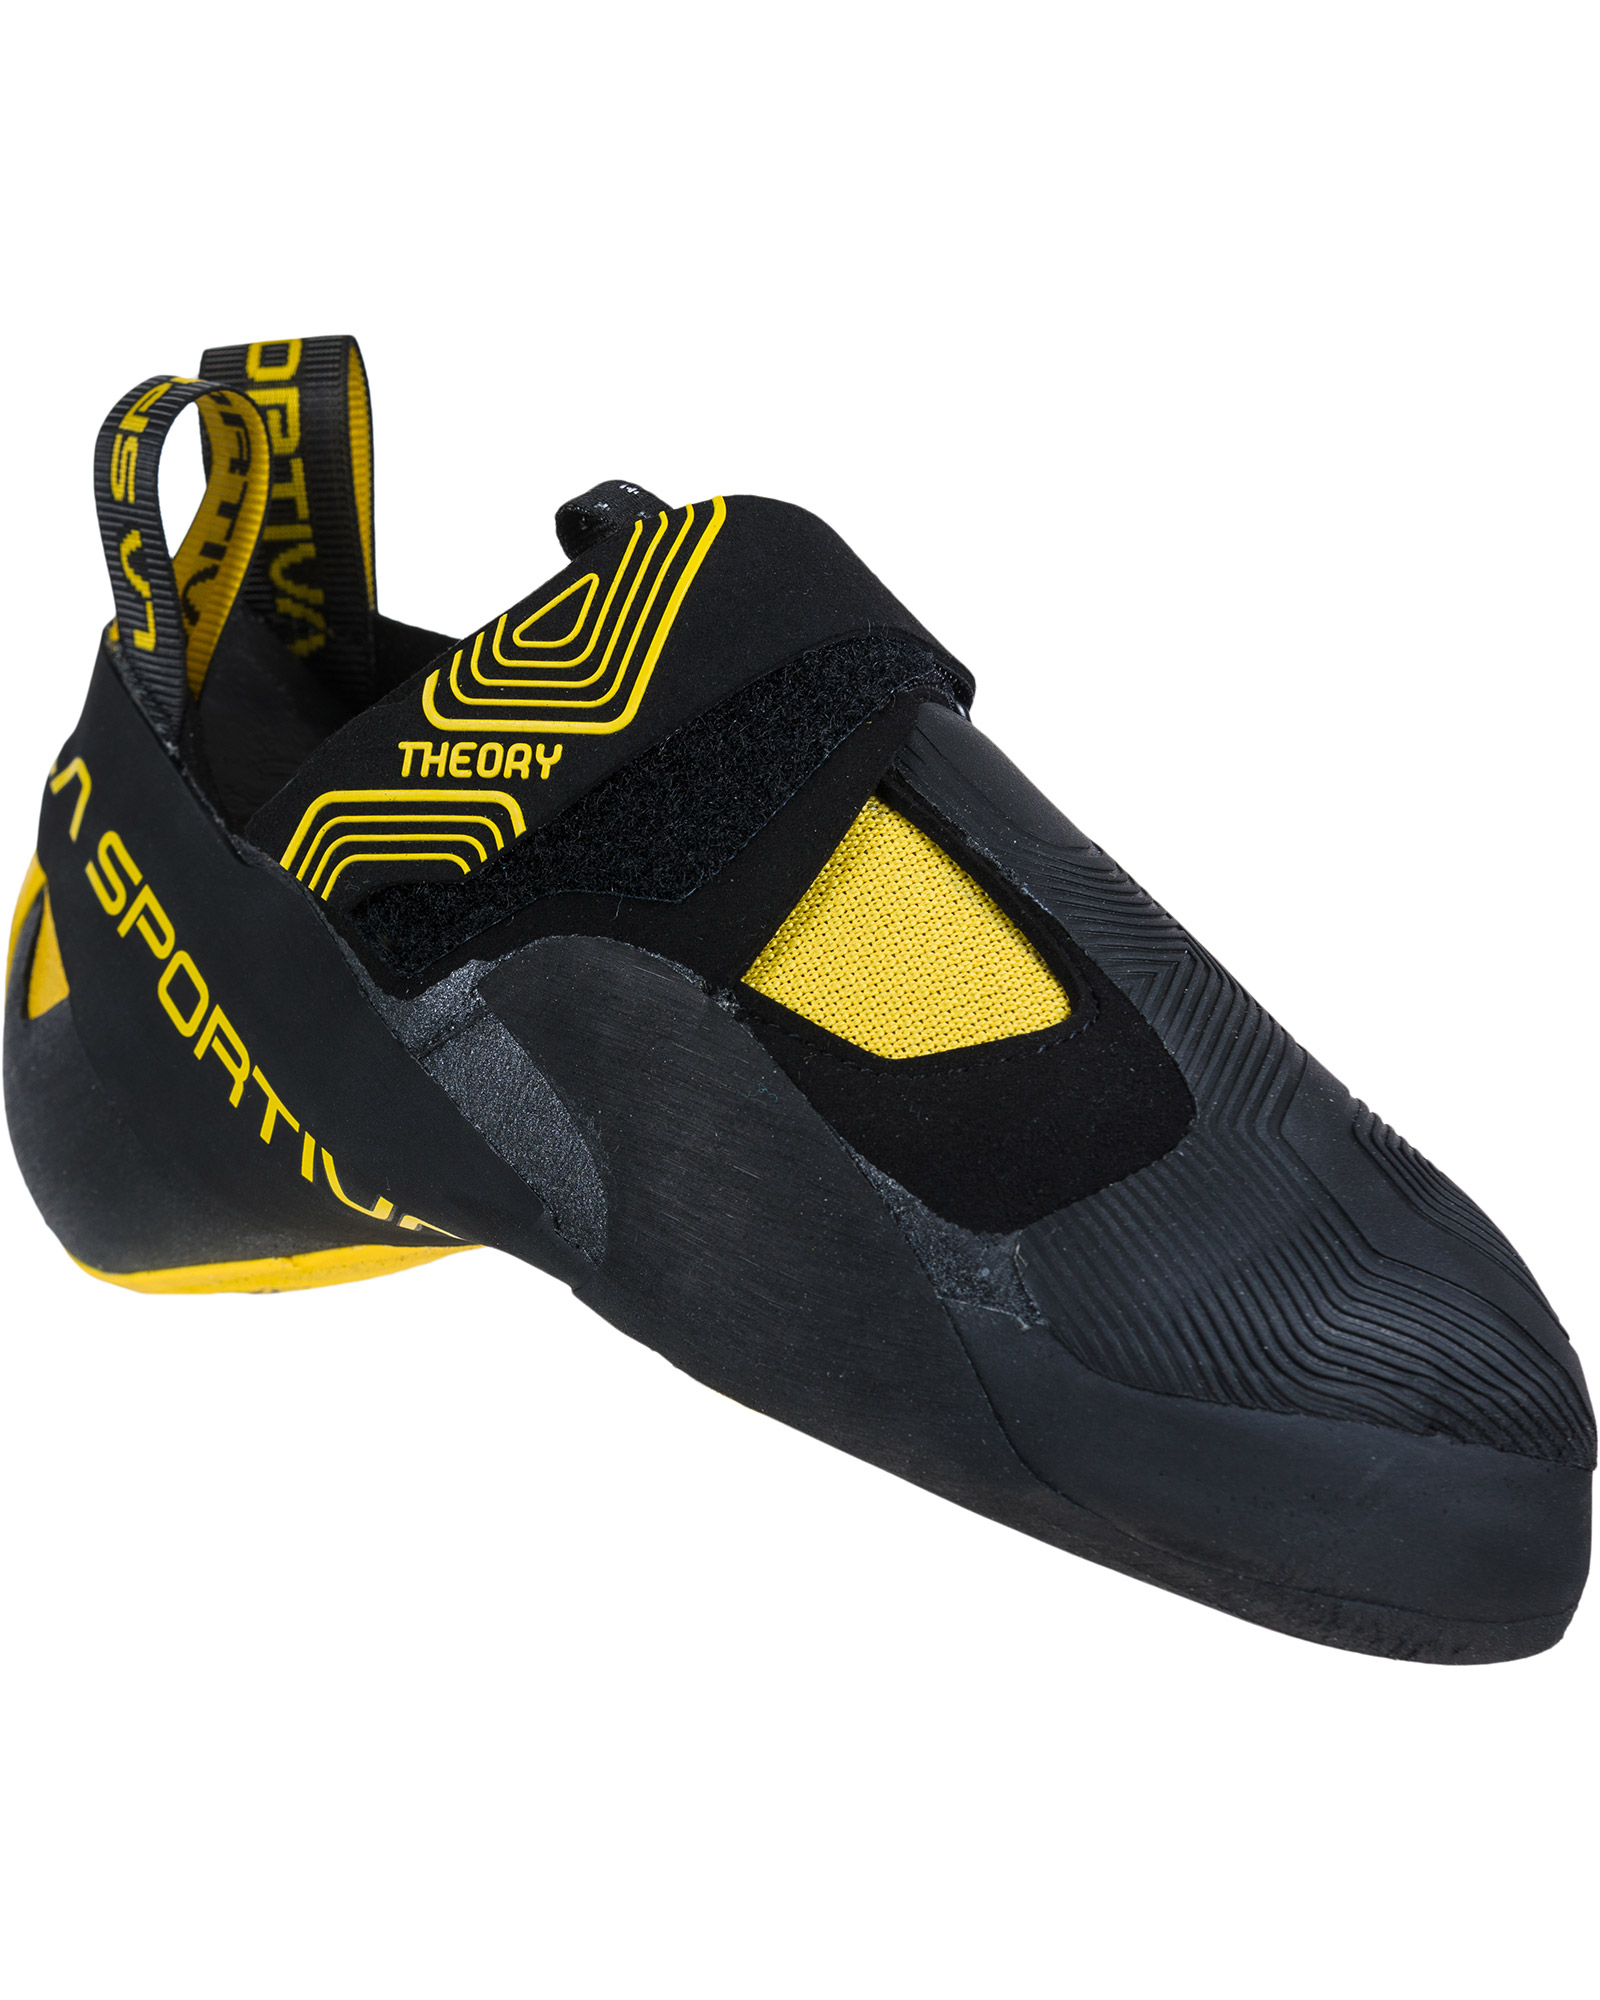 La Sportiva Men's Theory Climbing Shoes 0